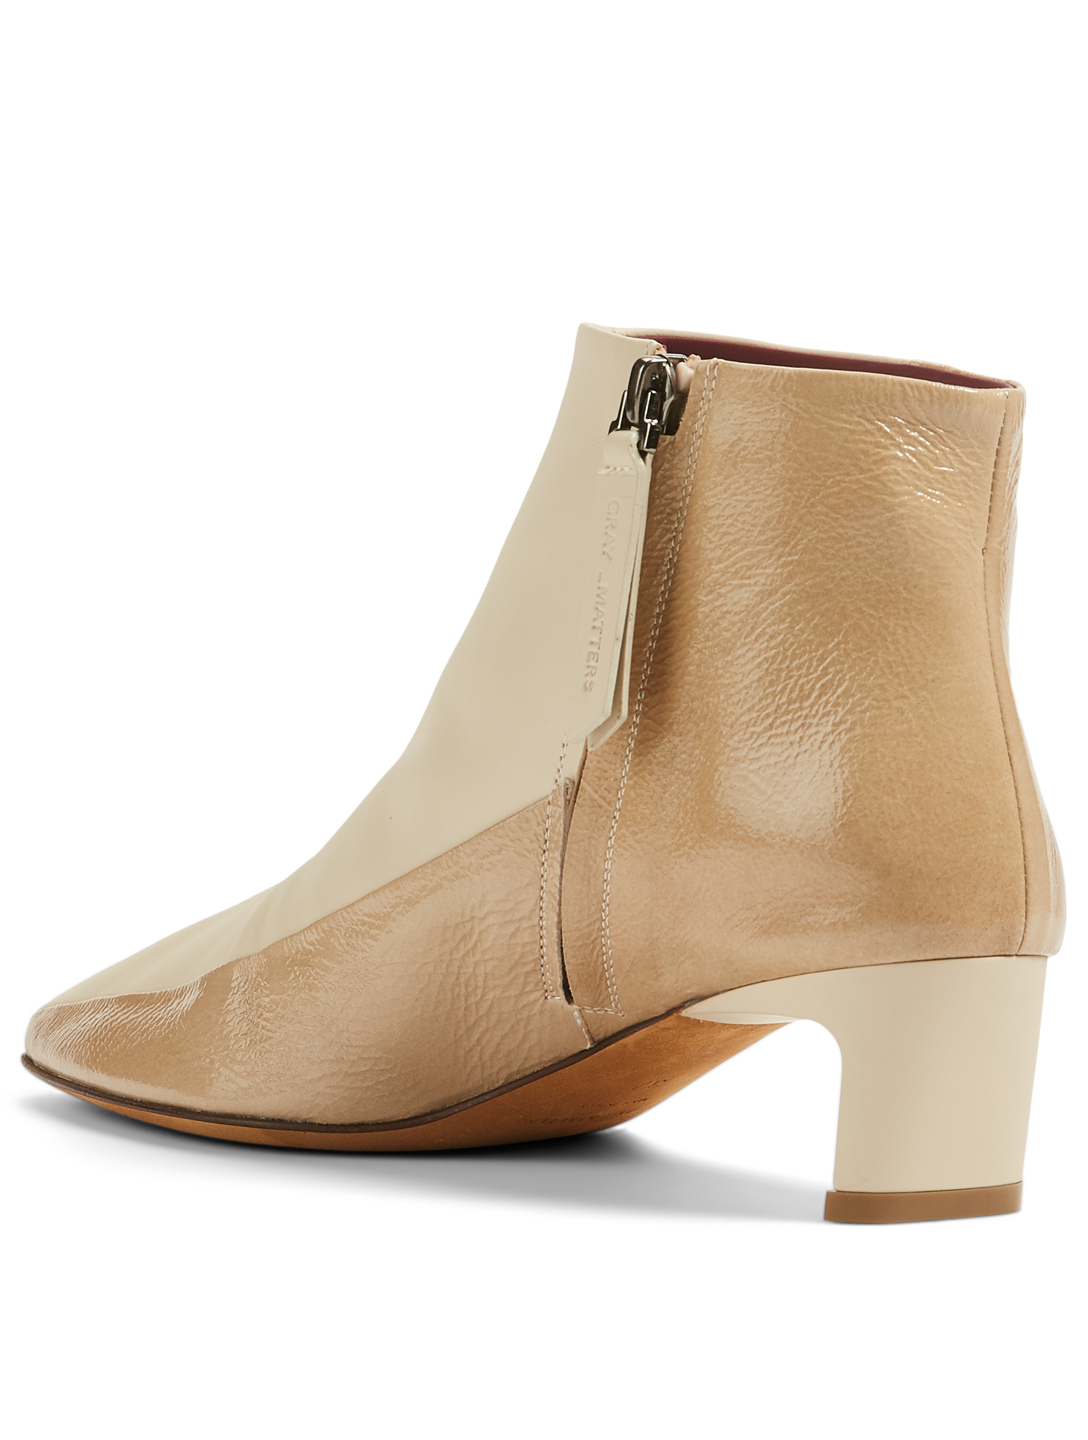 GRAY MATTERS Margherita Leather Heeled Ankle Boots Women's Pink